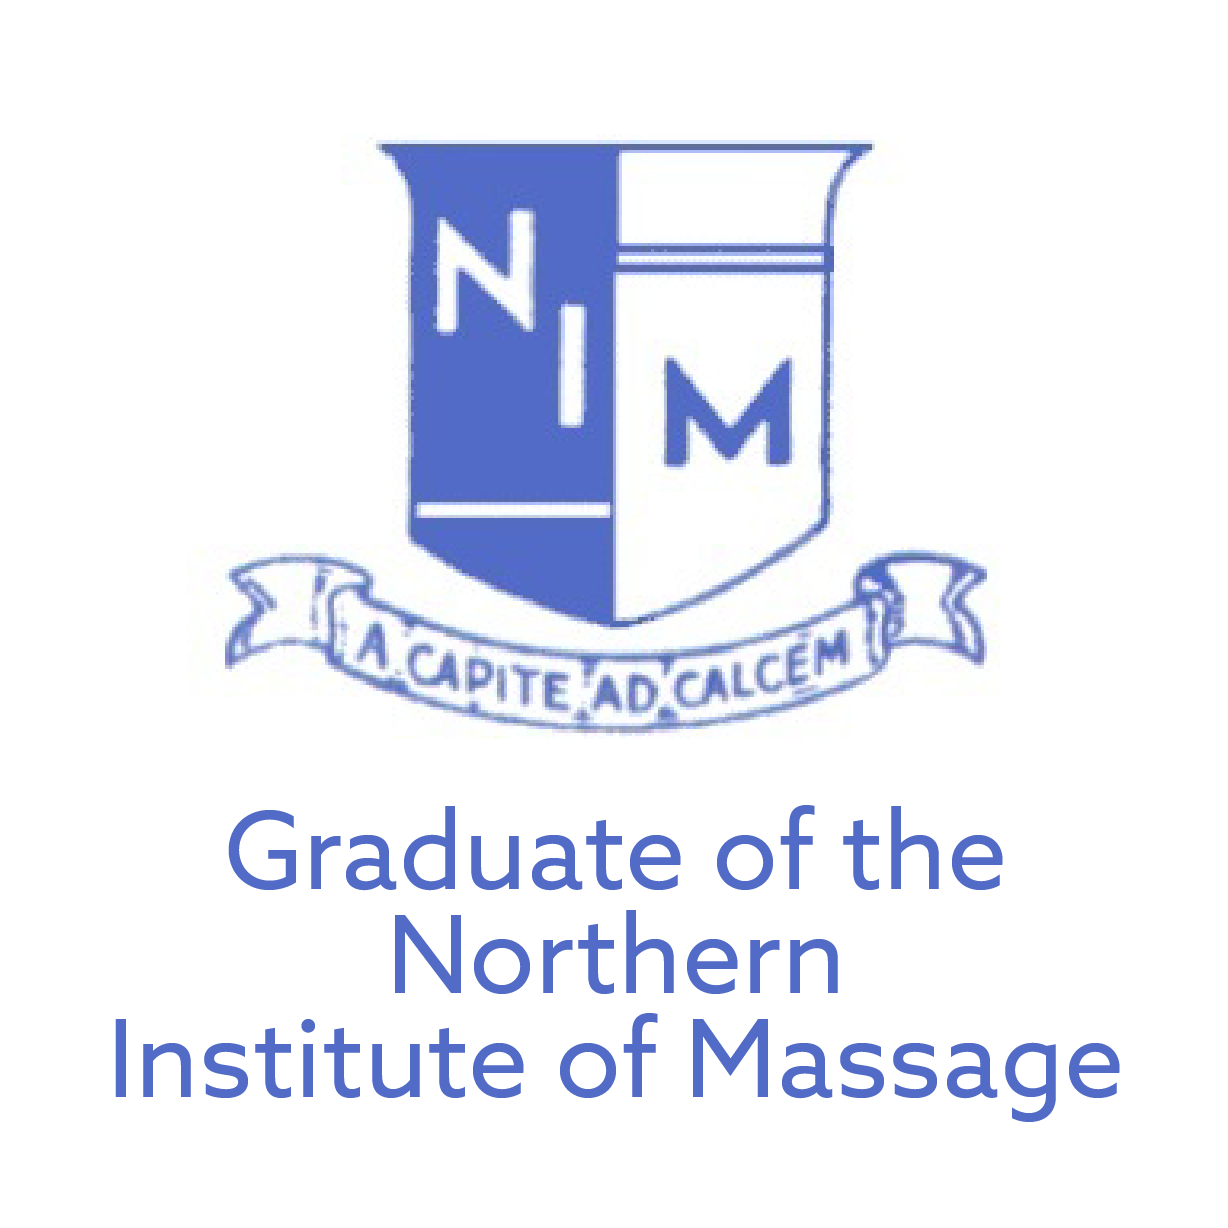 The Northern Institute of Massage (Est.1924) is located in the centre of Bury Greater Manchester and offers expert and professionally recognised training in massage therapy.